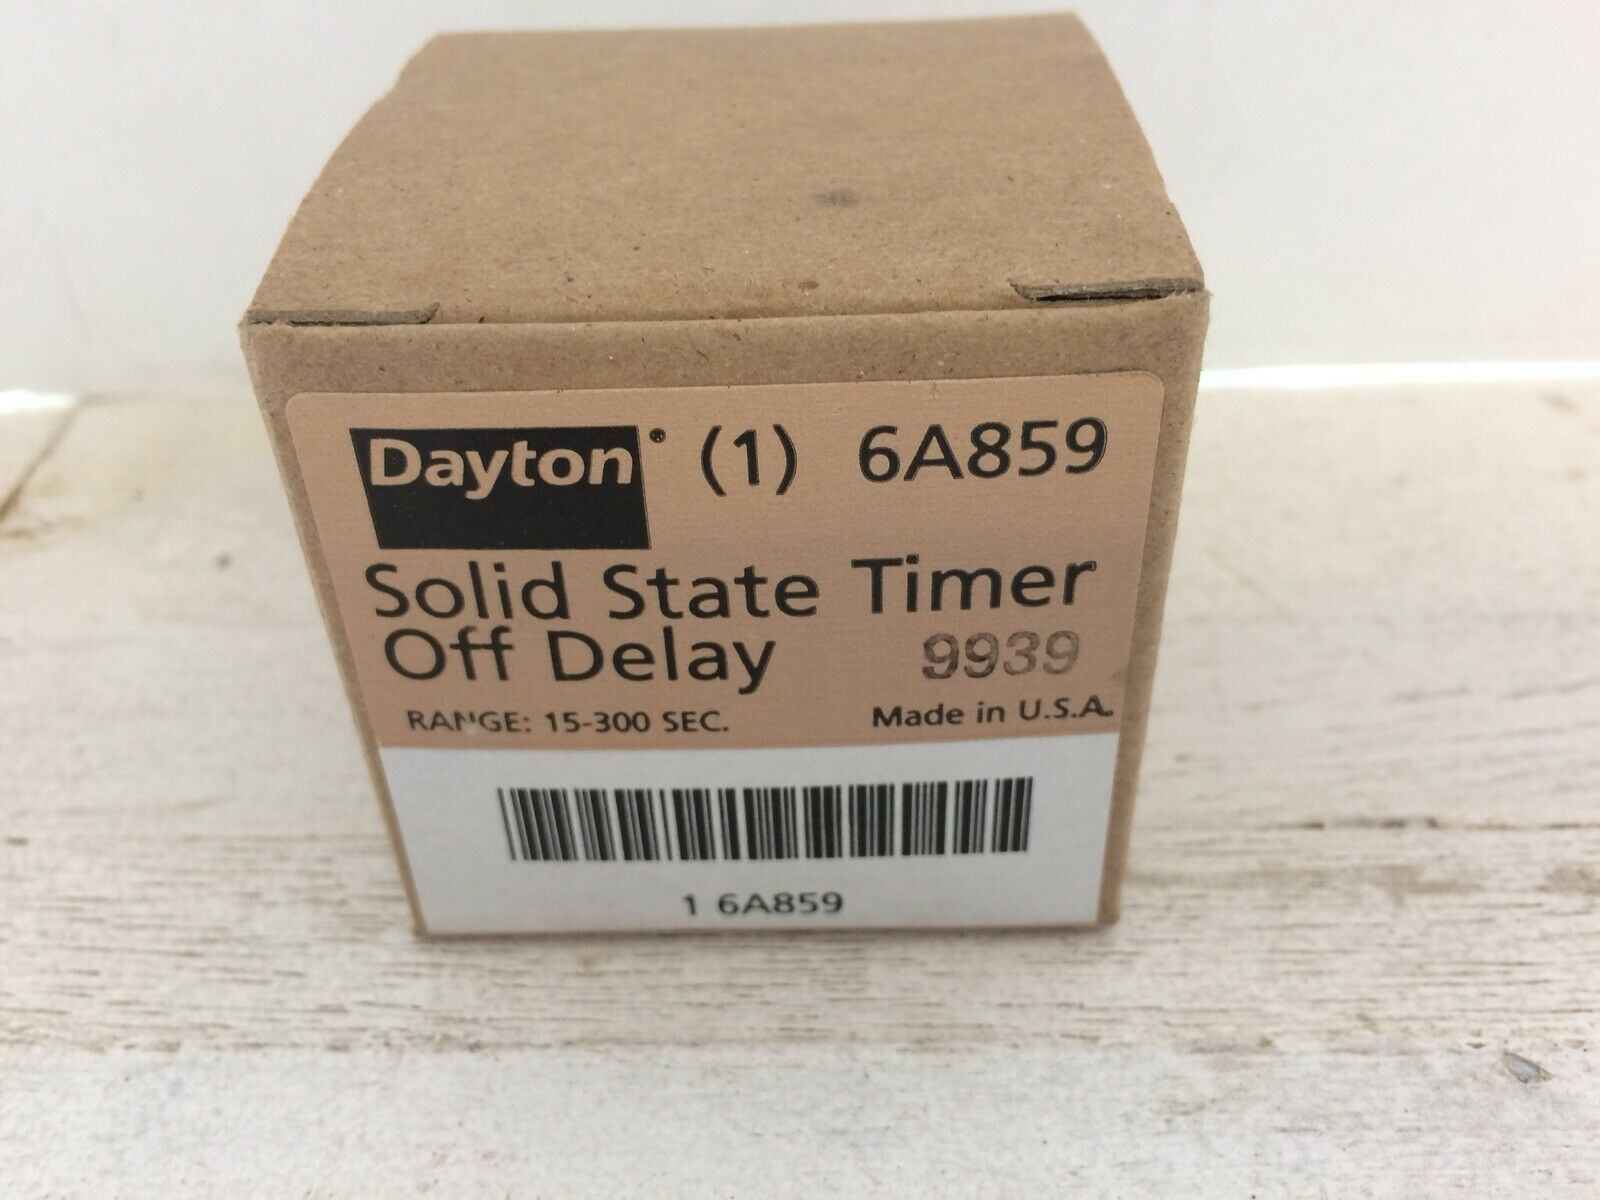 Dayton 6A859 Encapsulated Solid State Timer Relay 15-300 SEC on